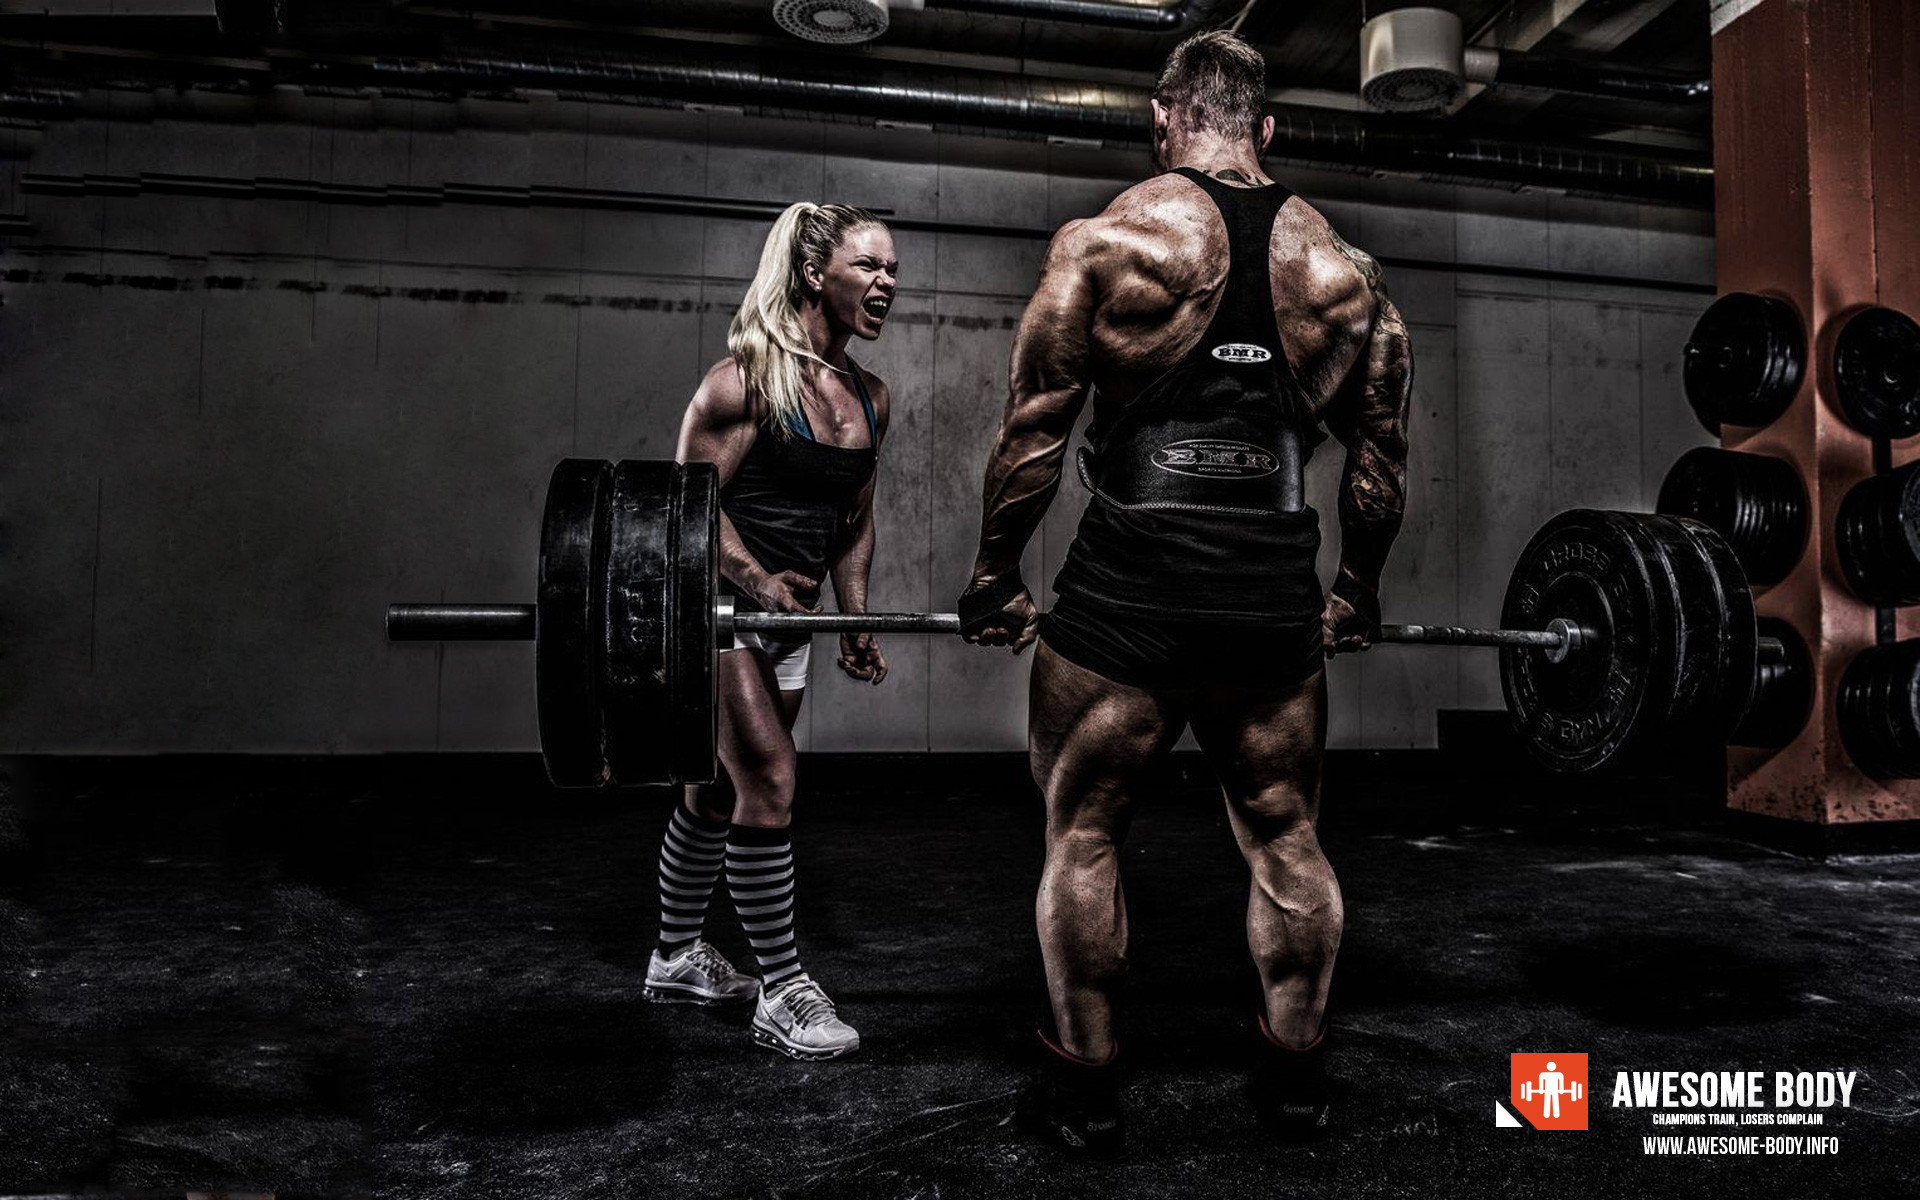 Dead Lift Wallpaper Best HD Bodybuilding Wallpapers 1920x1200